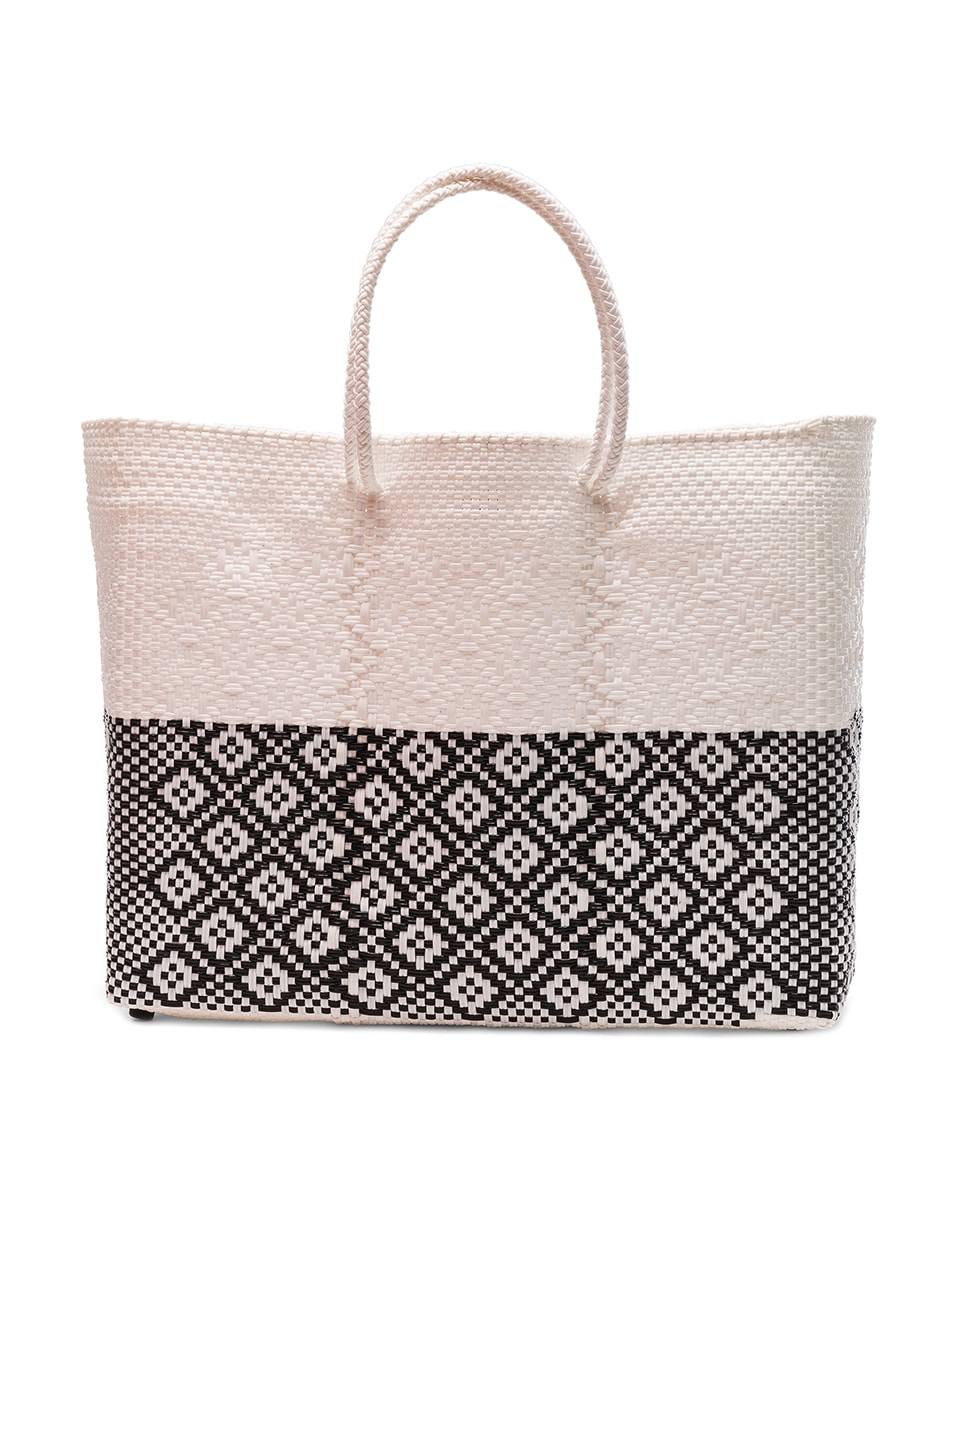 Image 1 of Truss Large Tote in Half White